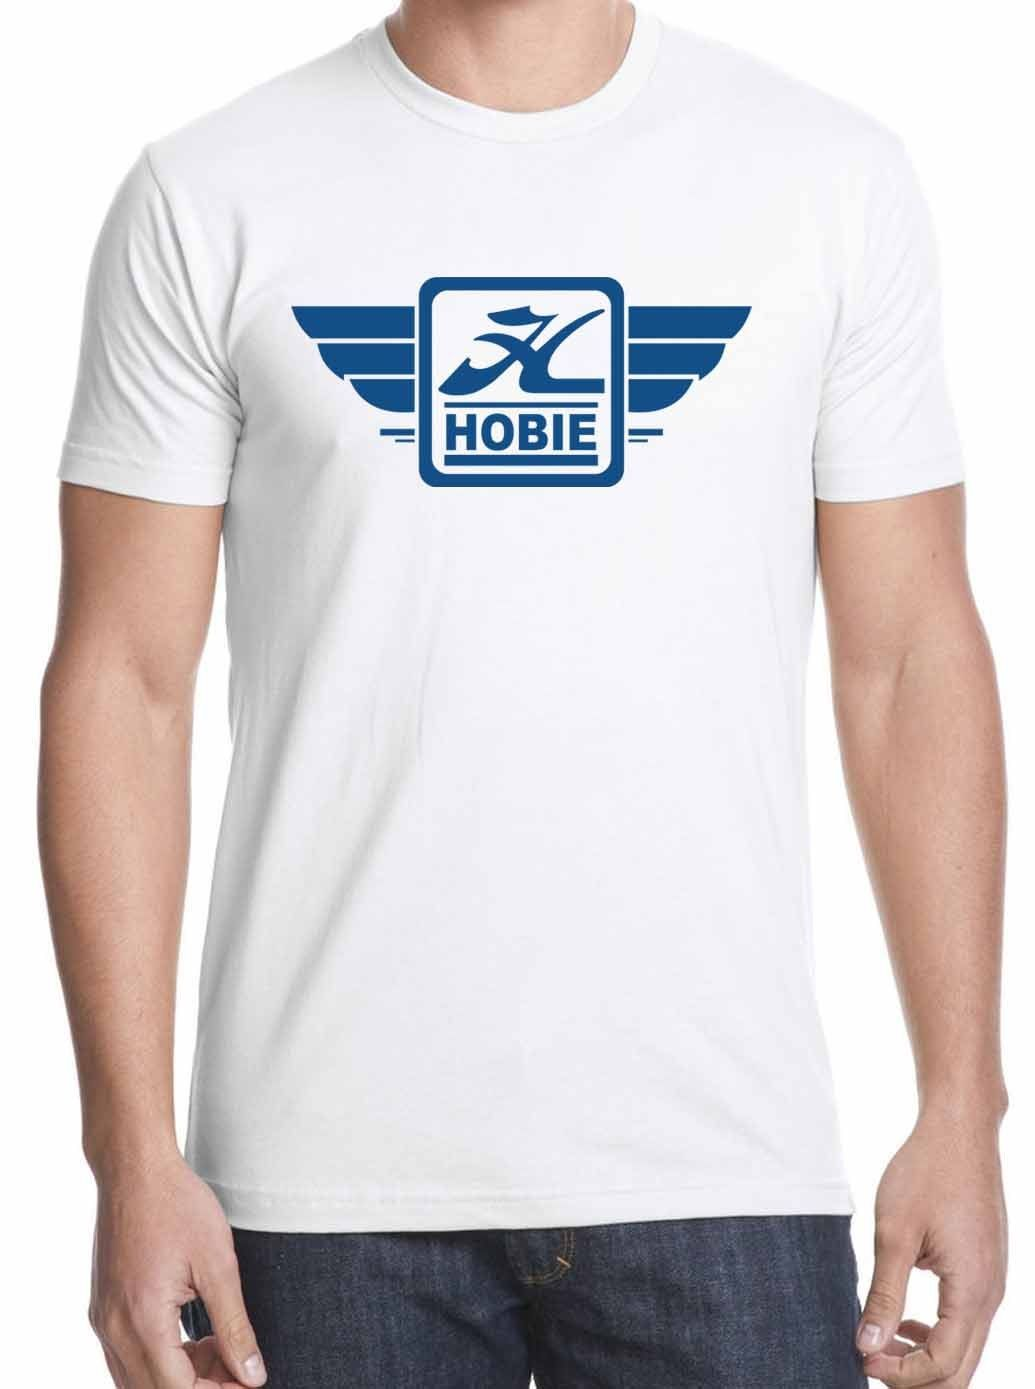 deck wheels Old Skool skateboardinged HOBIE 70s Skateboard logo t-shirt size S-XXL